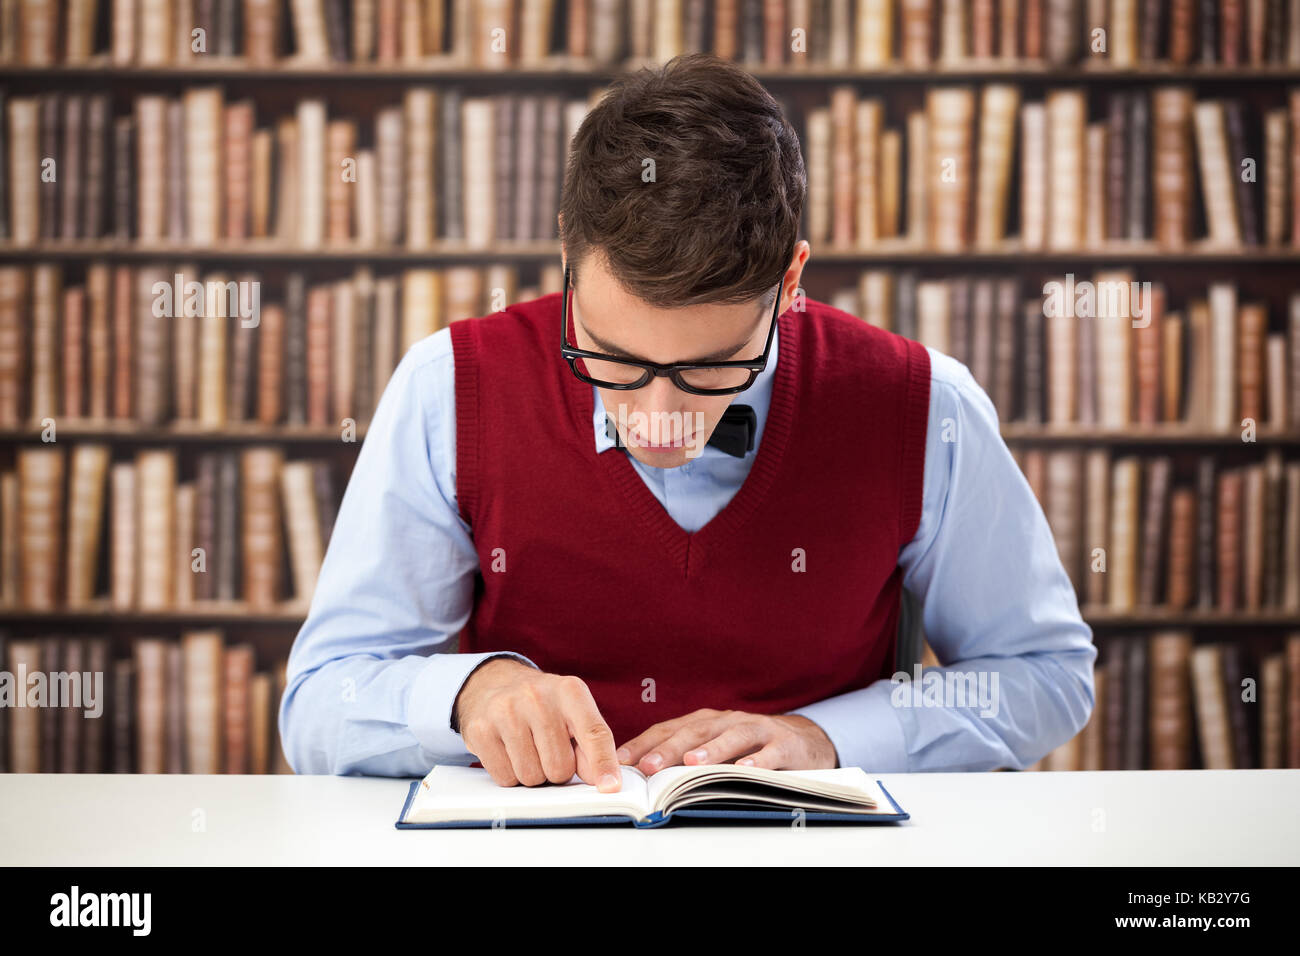 learning in library,  focused student reading book - Stock Image